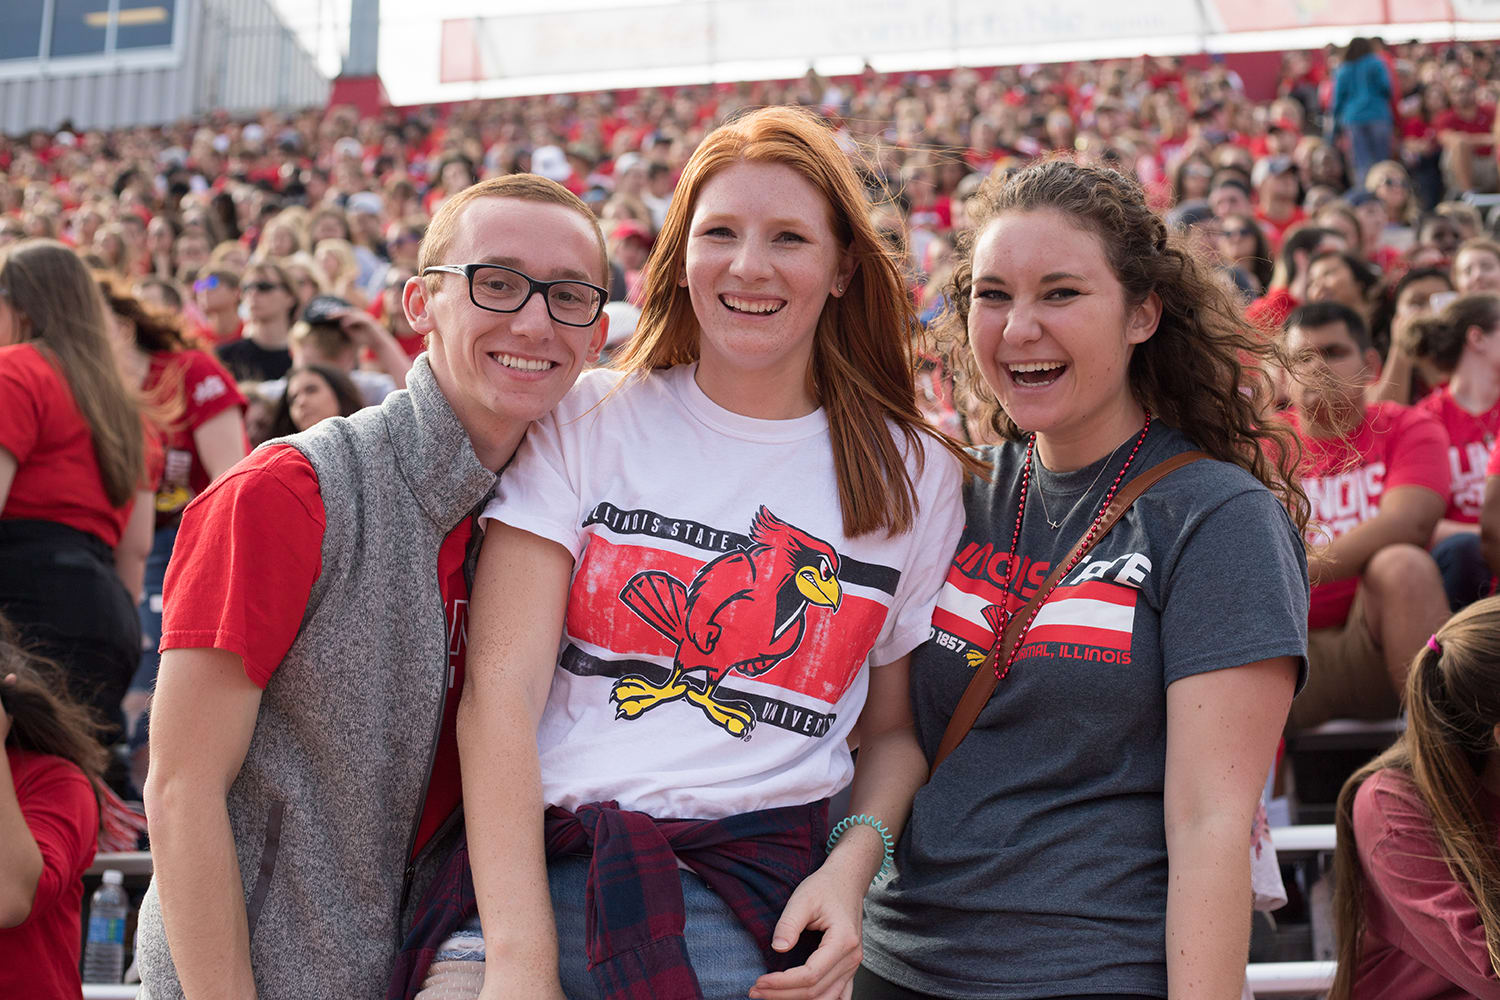 Show your team spirit at an Illinois State football game